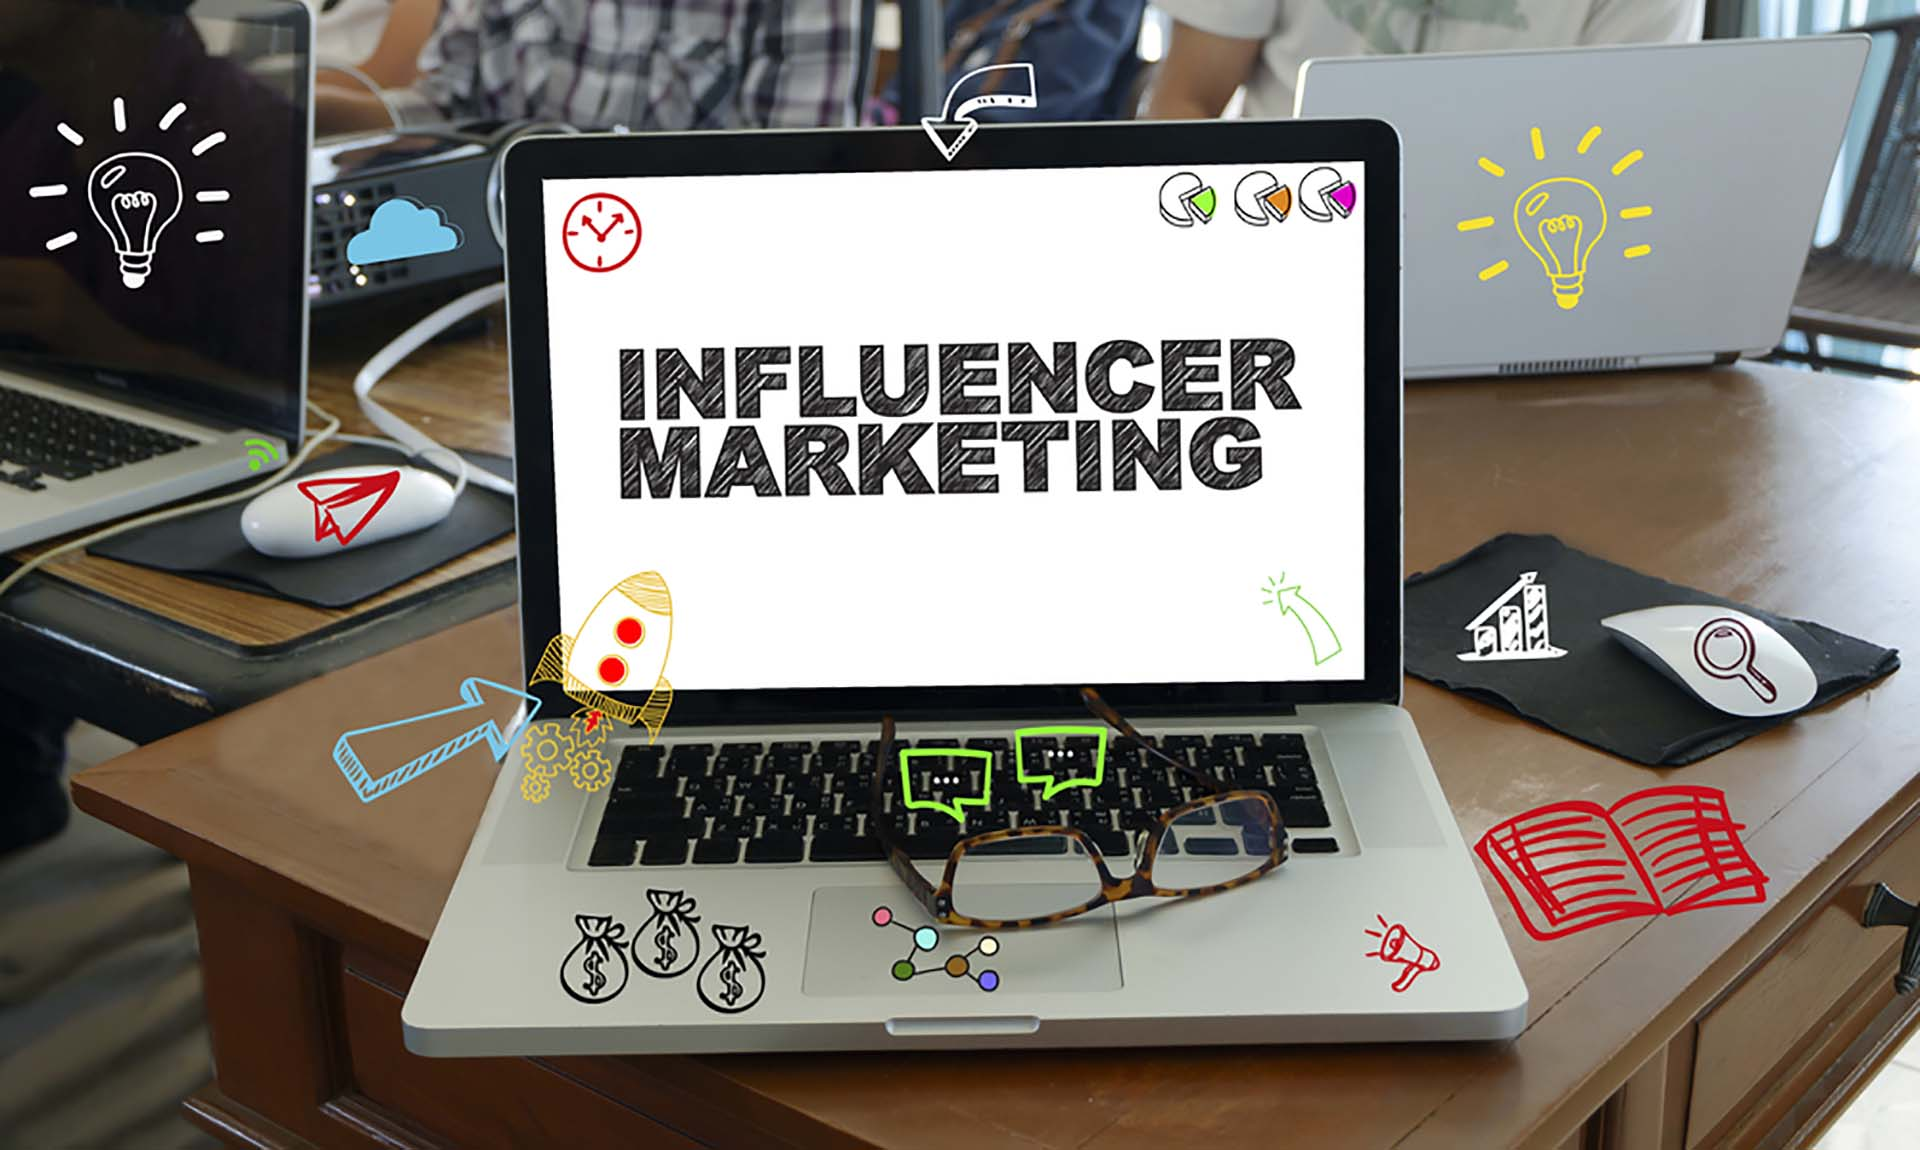 As Blockchain Becomes a Game Changer for Influencer Marketing, AdTech Platforms Wants to Lead the Way